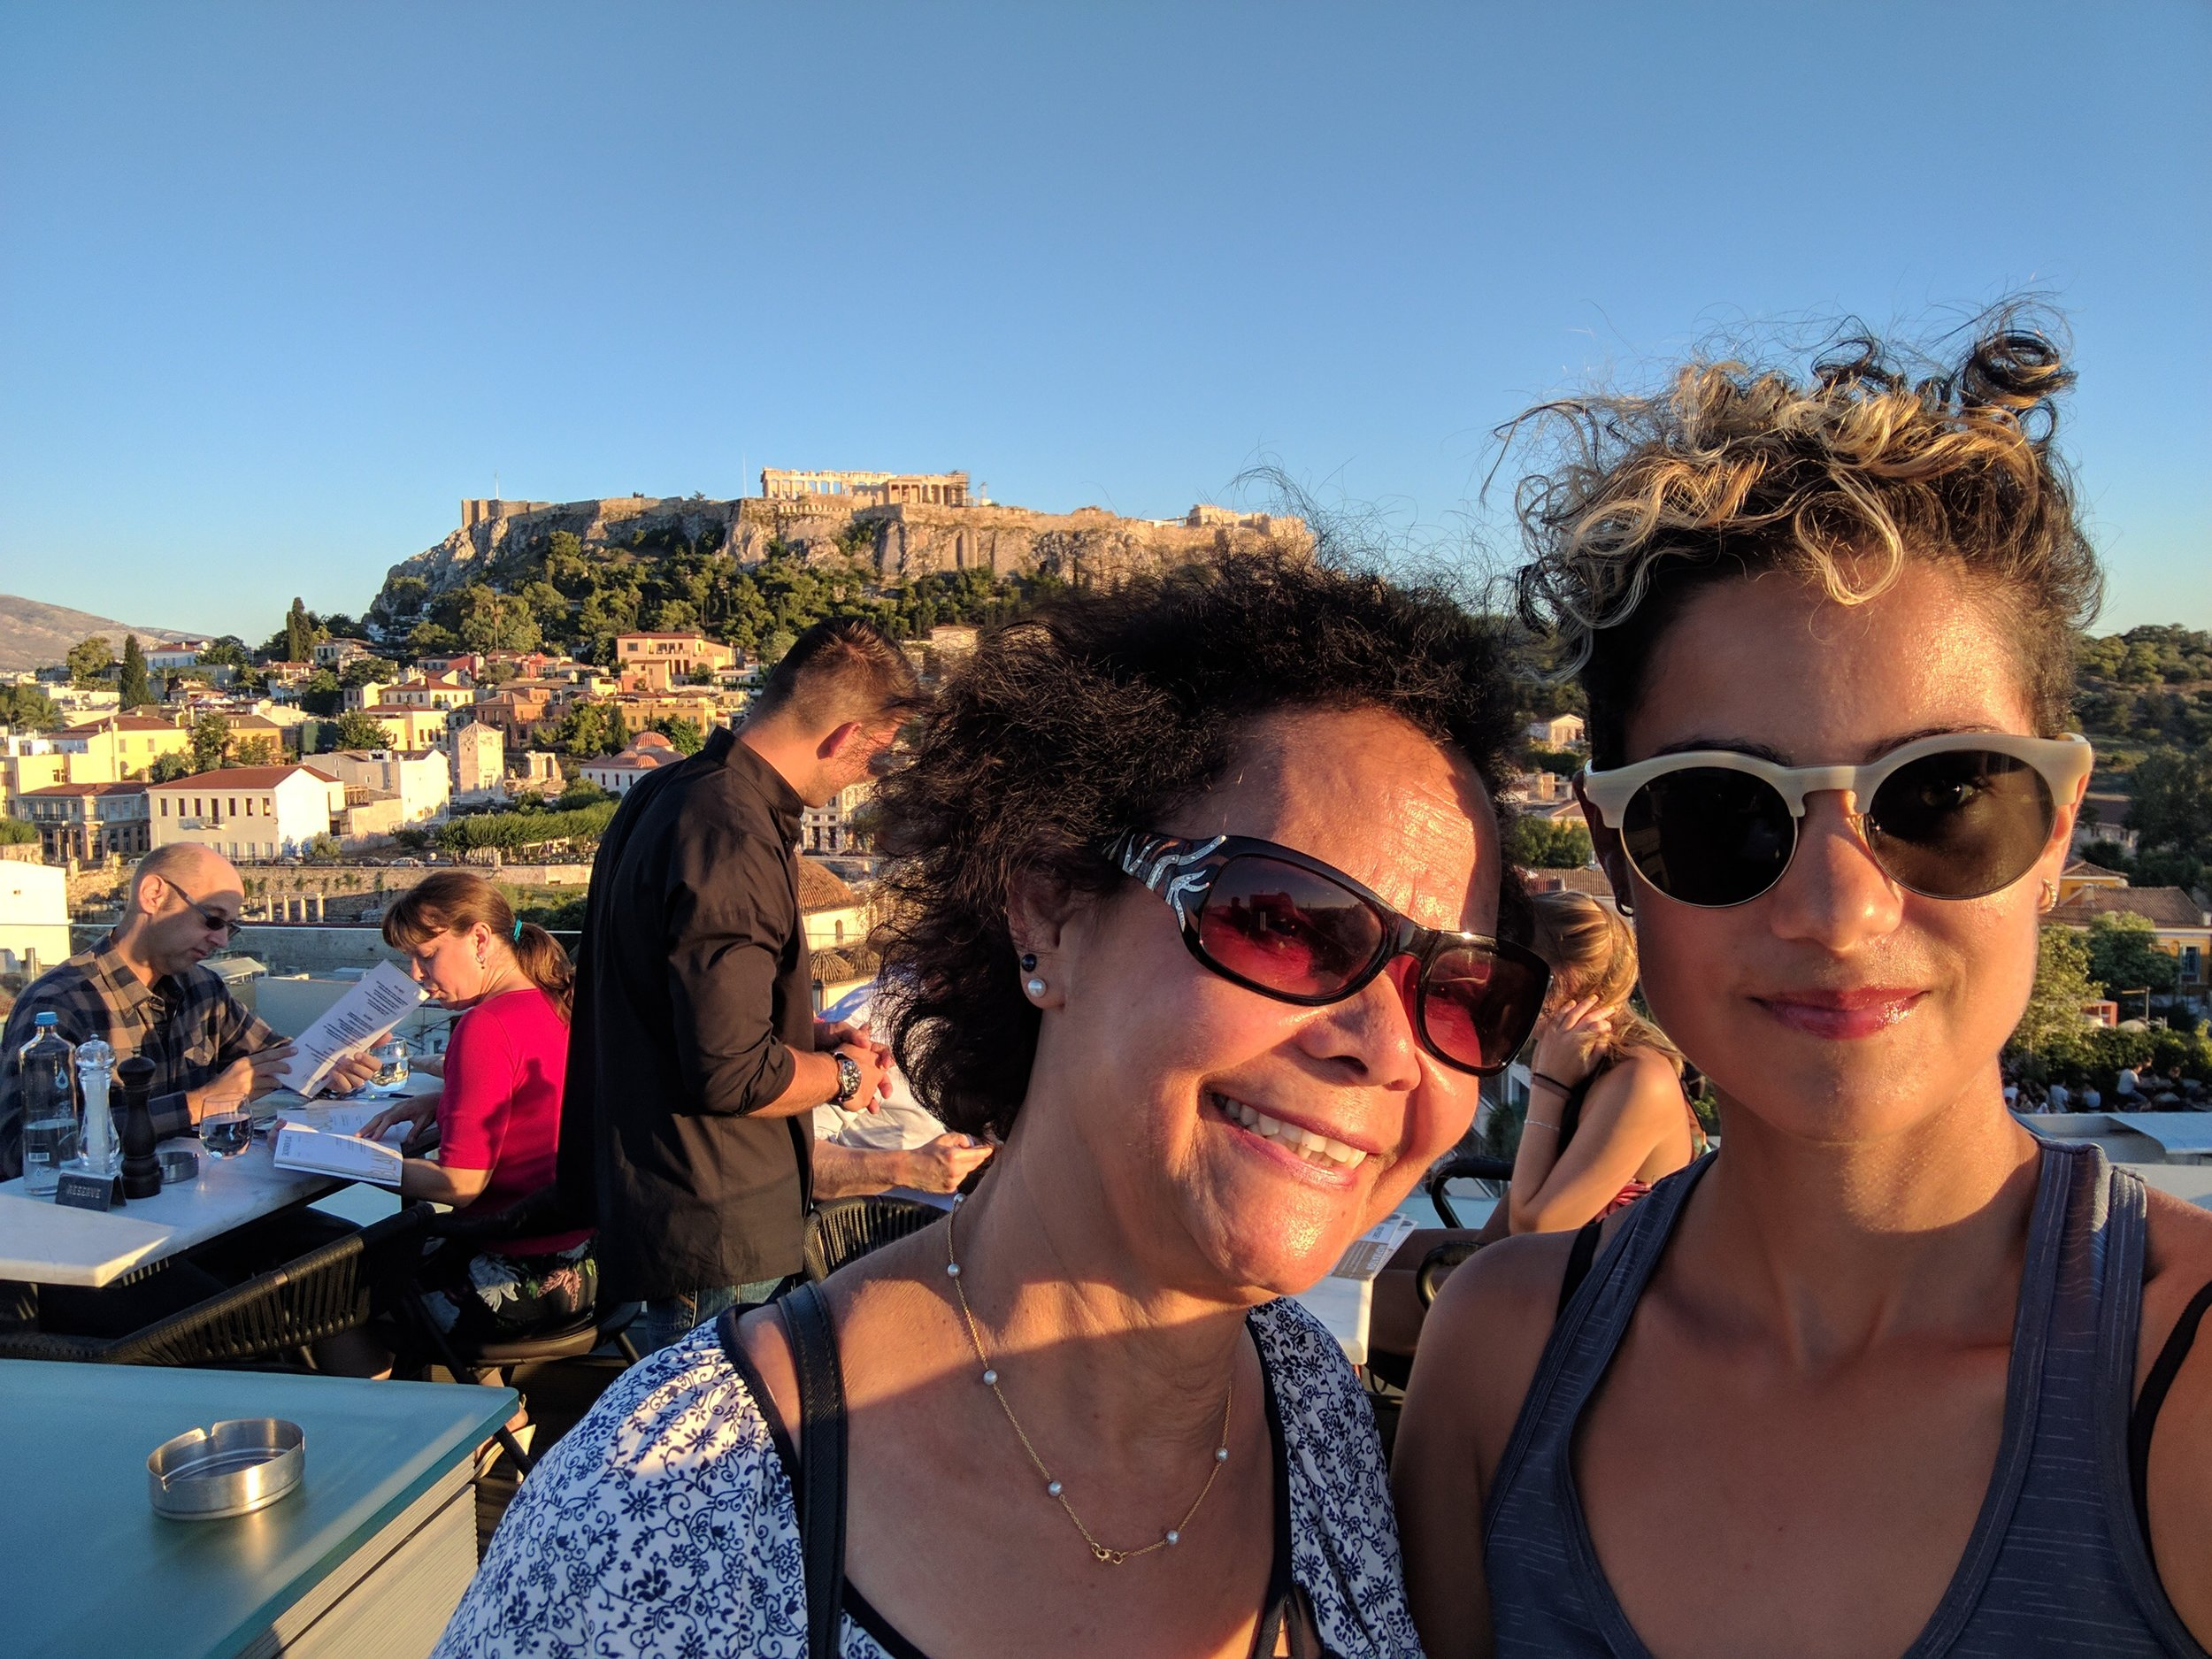 Rooftop bar + view of Acropolis = perfection